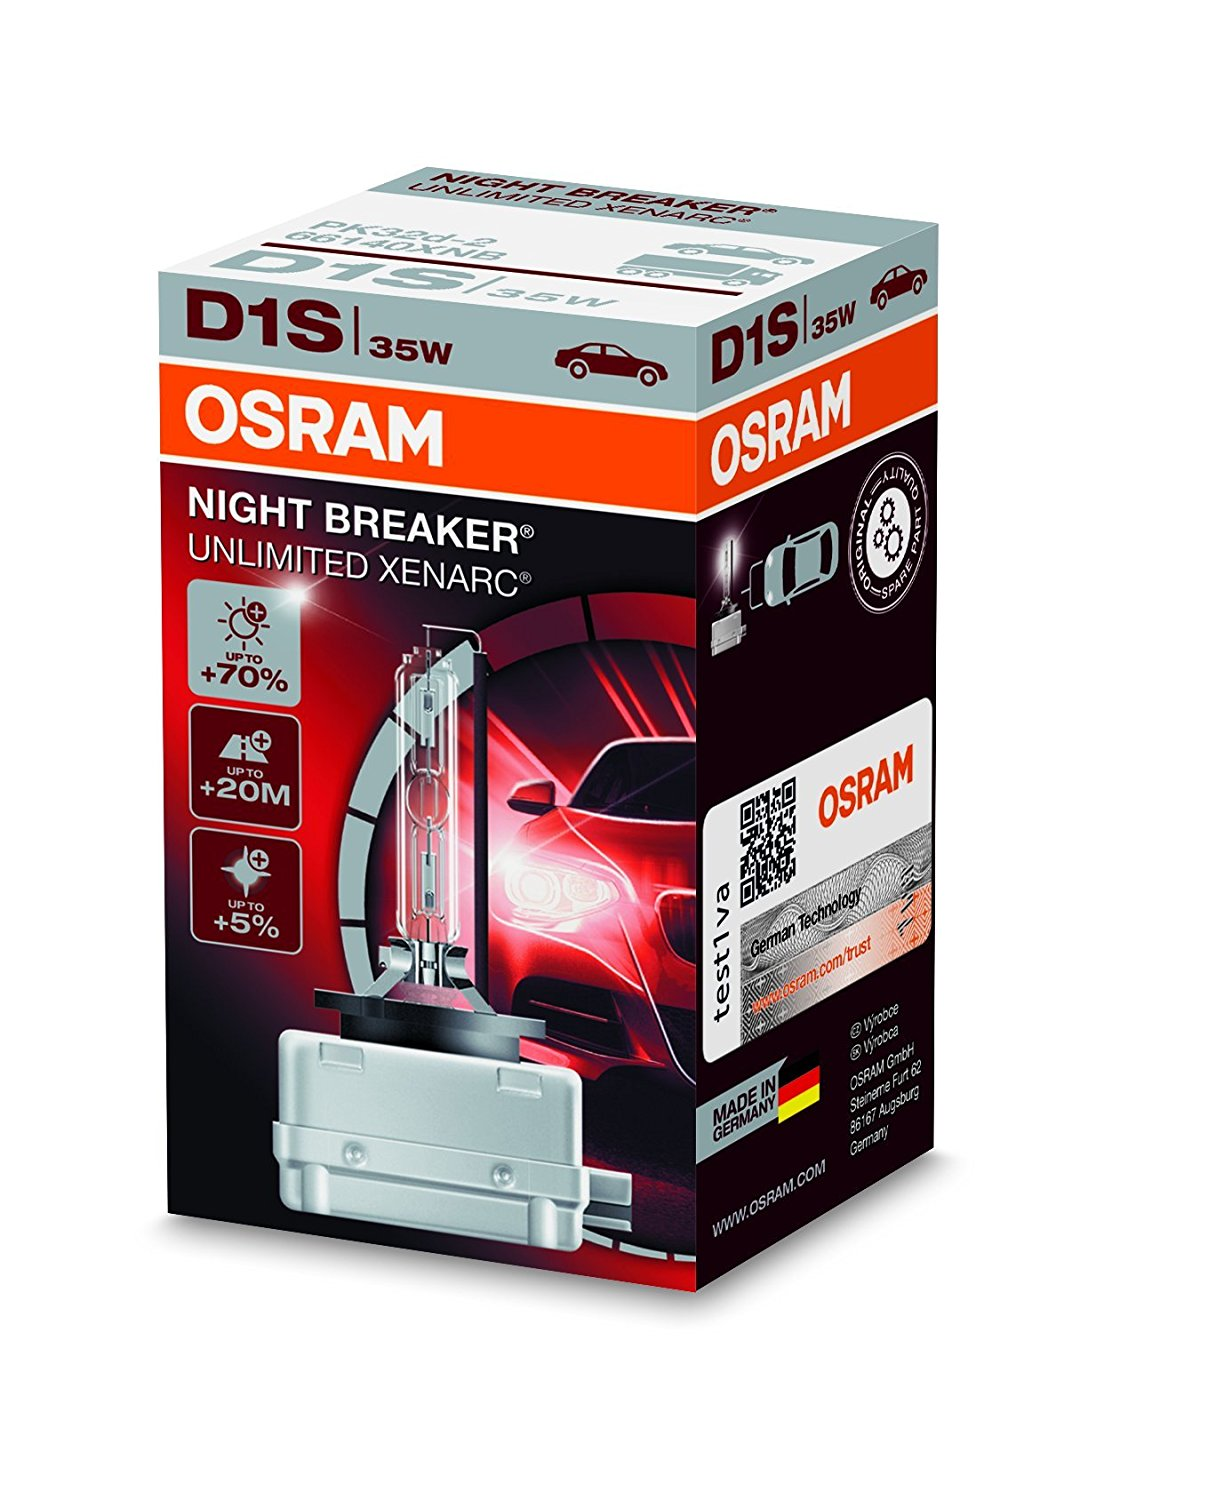 OSRAM D1S Xenarc Night Breaker